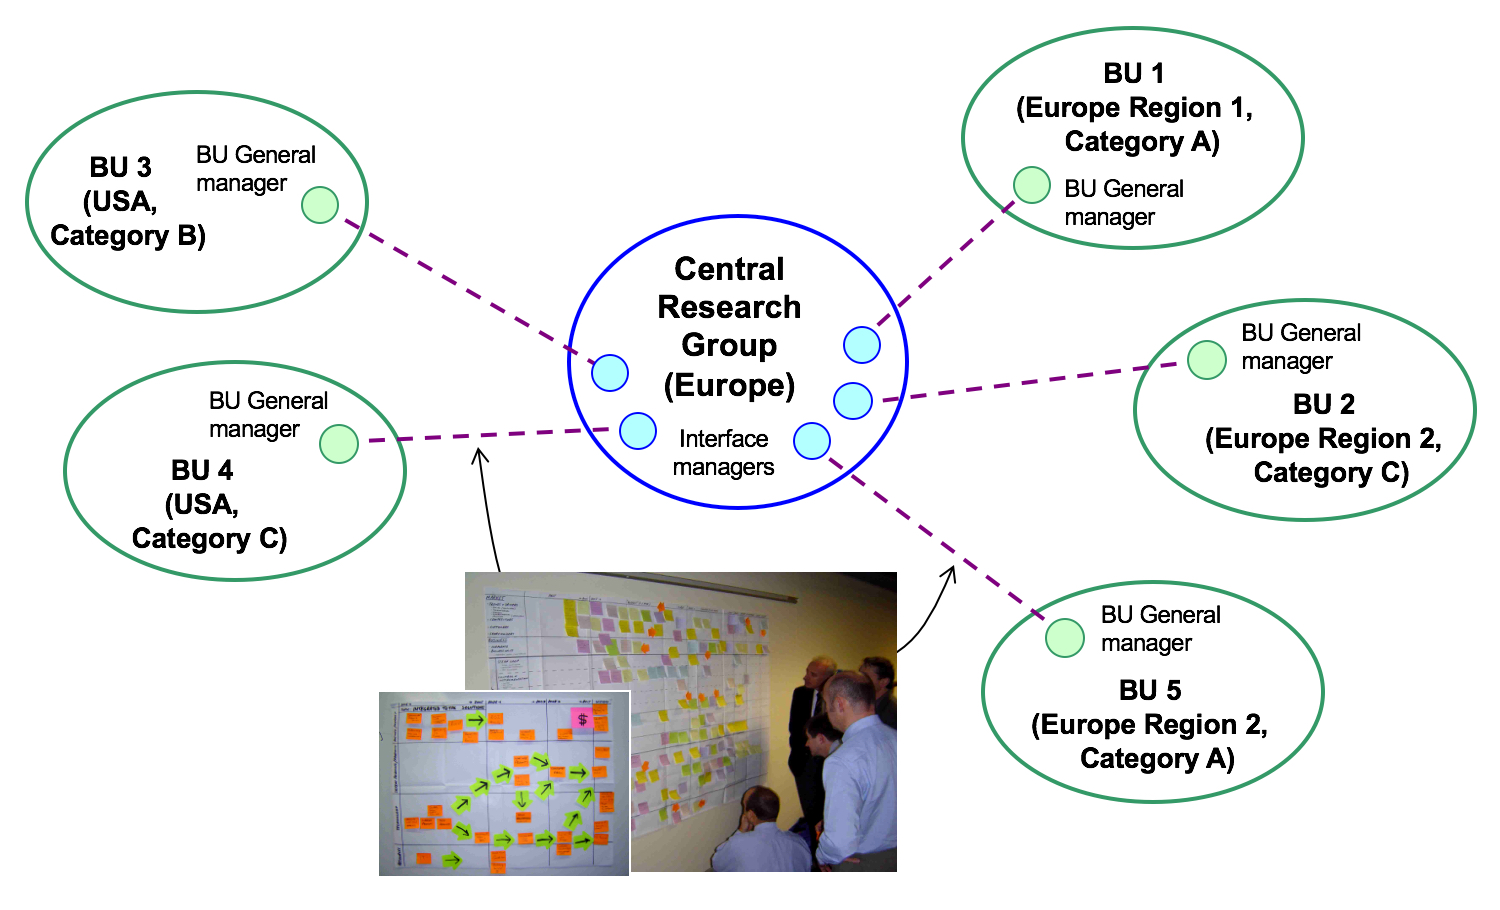 a) Sequential roadmapping application, with refinements as process progressed, with the purpose of aligning corporate research with commercial business unit needs, and transferring the method to the company. Following the first pilot, a series of roadmaps were produced collaboratively by teams from the central R&D facility and diverse business units in terms of geography and market segmentation. Each workshop lasted 1.5 days, involving 20-30 participants from technical and commercial functions, with senior involvement and endorsement. With a common roadmap architecture it was possible to spot some key synergies early, with the full picture emerging over time, with a formal review after a year. The technology portfolio was revised substantially to be more business focused, aligned with roadmaps, with a proportion of the portfolio reserved for longer term more speculative R&D. A carefully selected pilot is a low risk starting point in such initiatives, demonstrating early benefits.